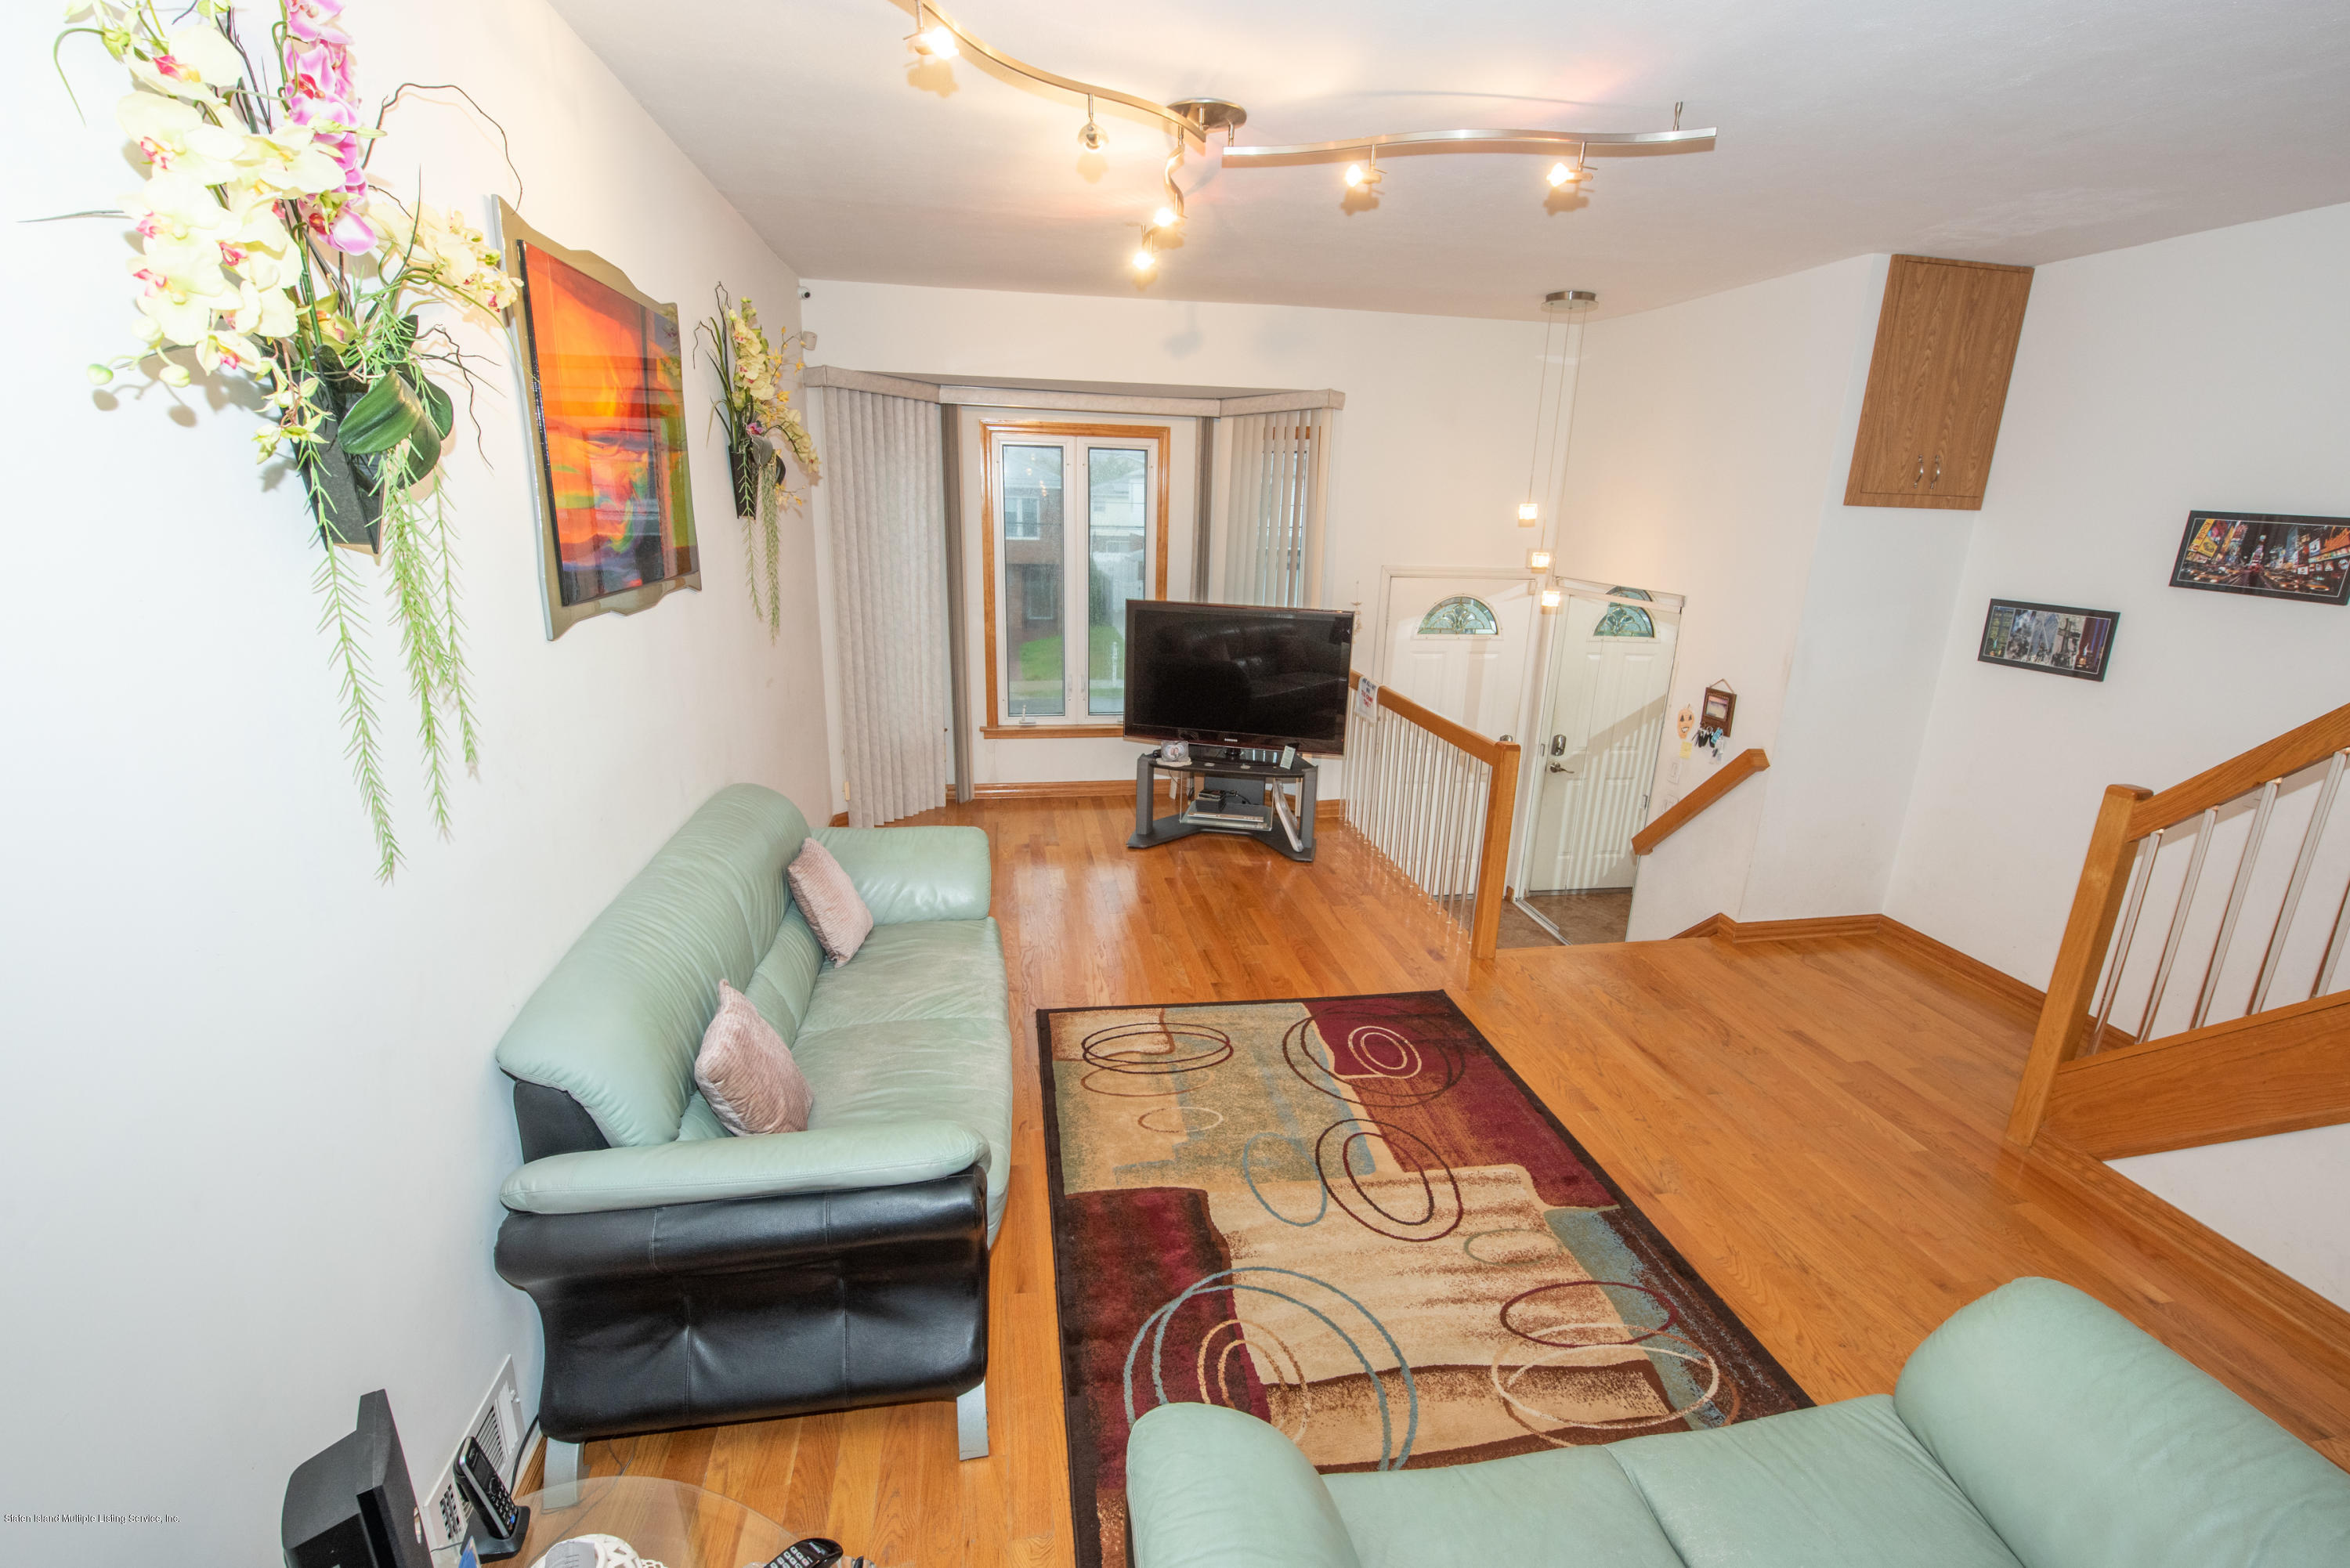 Single Family - Semi-Attached 76 Mcveigh Avenue  Staten Island, NY 10314, MLS-1133370-8